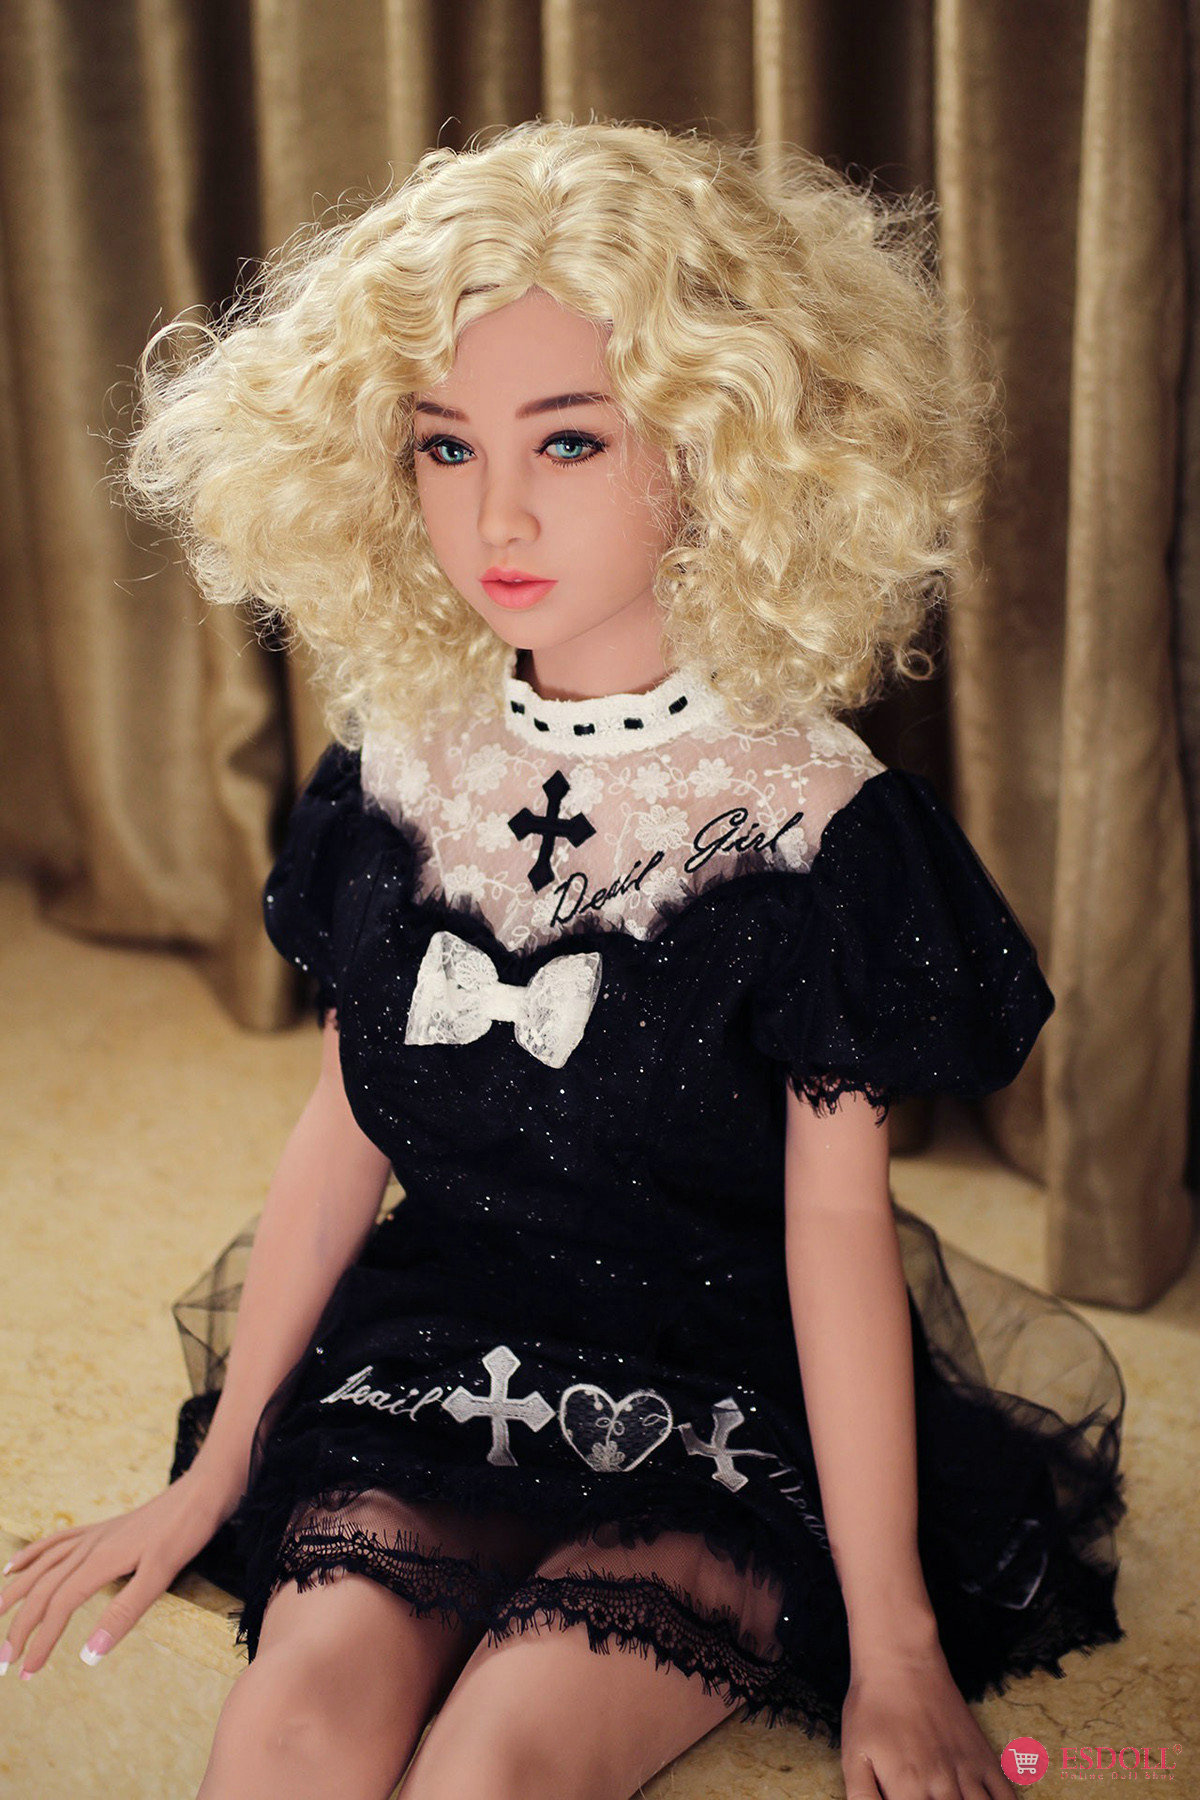 156cm 5.12ft Lily sex doll - 15